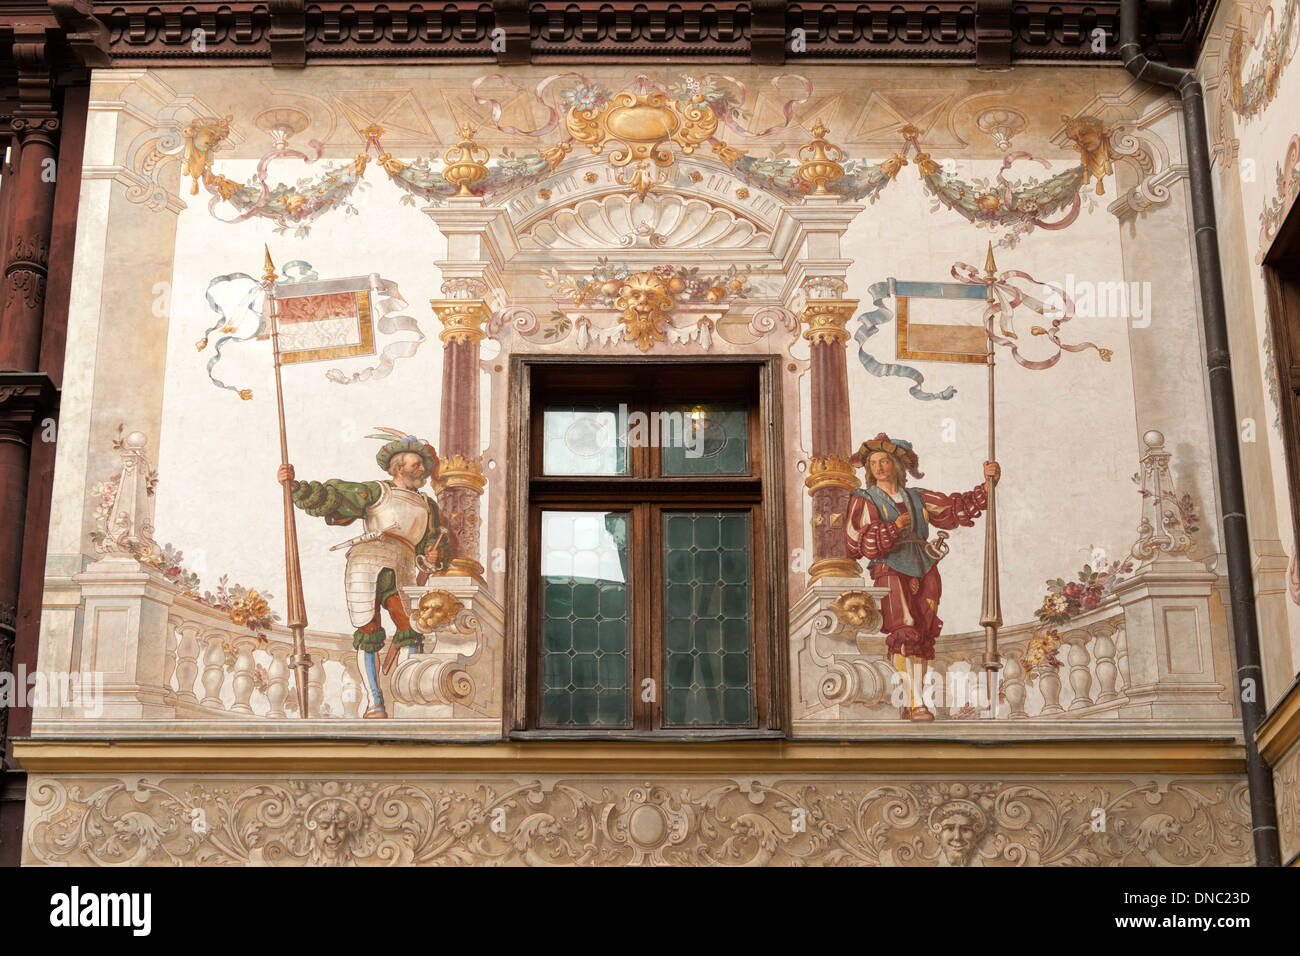 Mural and architectural detail in the courtyard of Peleș Castle in Sinaia in the Transylvania region of central - Stock Image